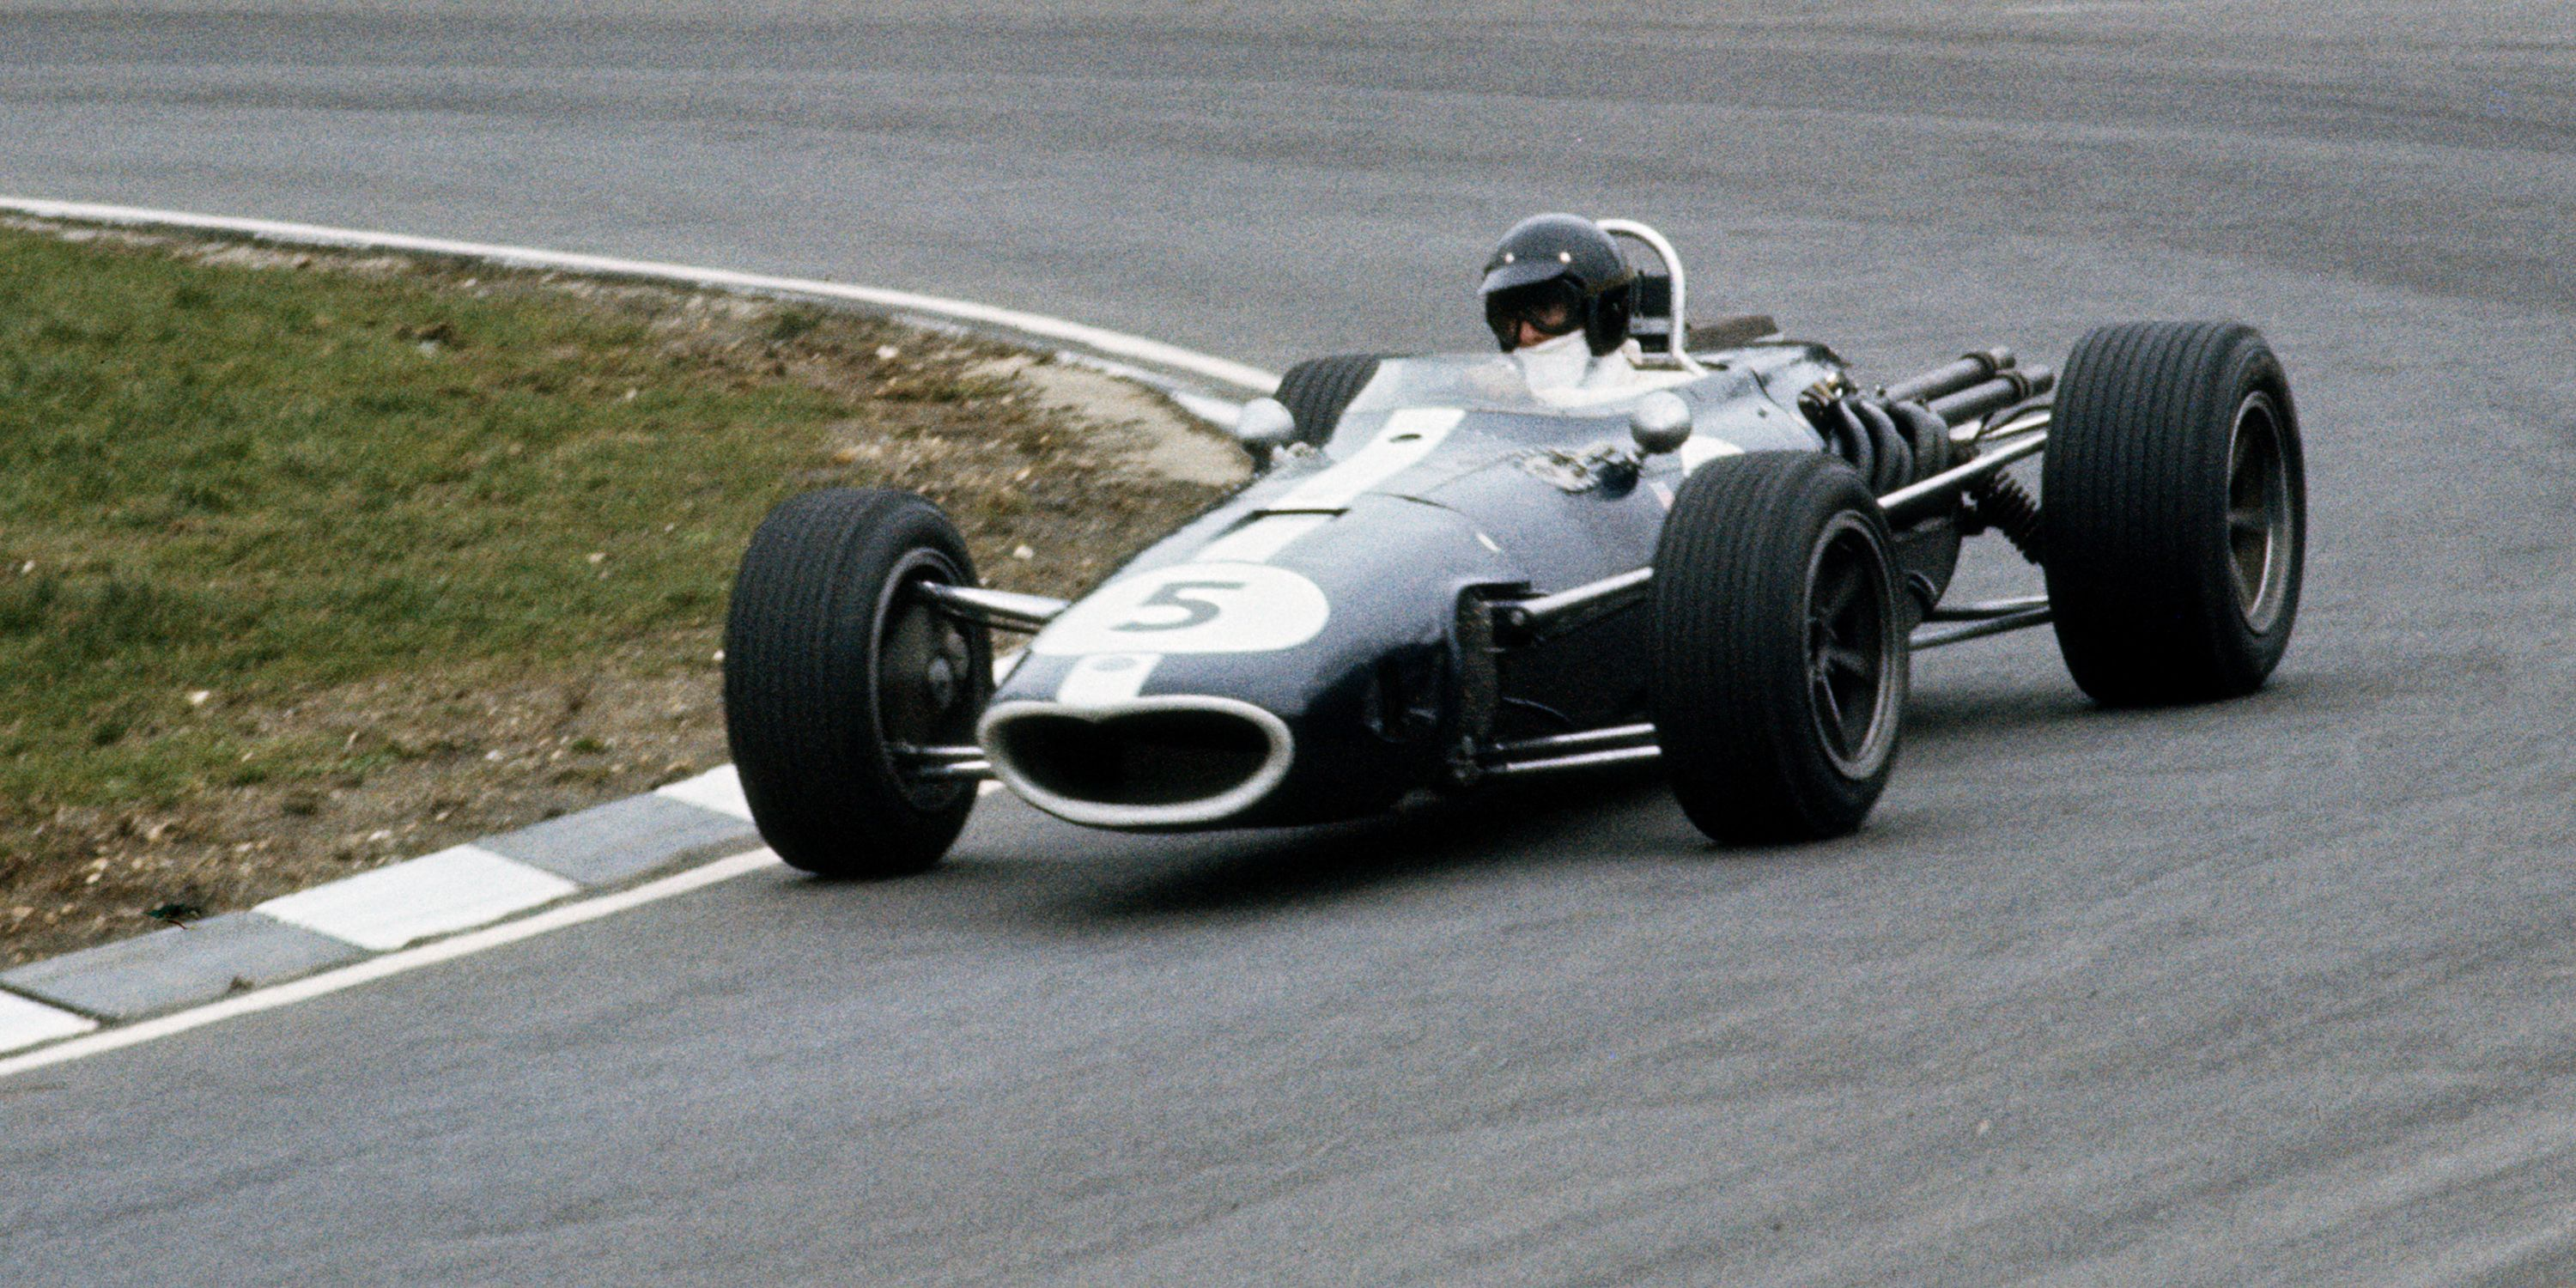 16 of the Greatest American Race Cars of All Time